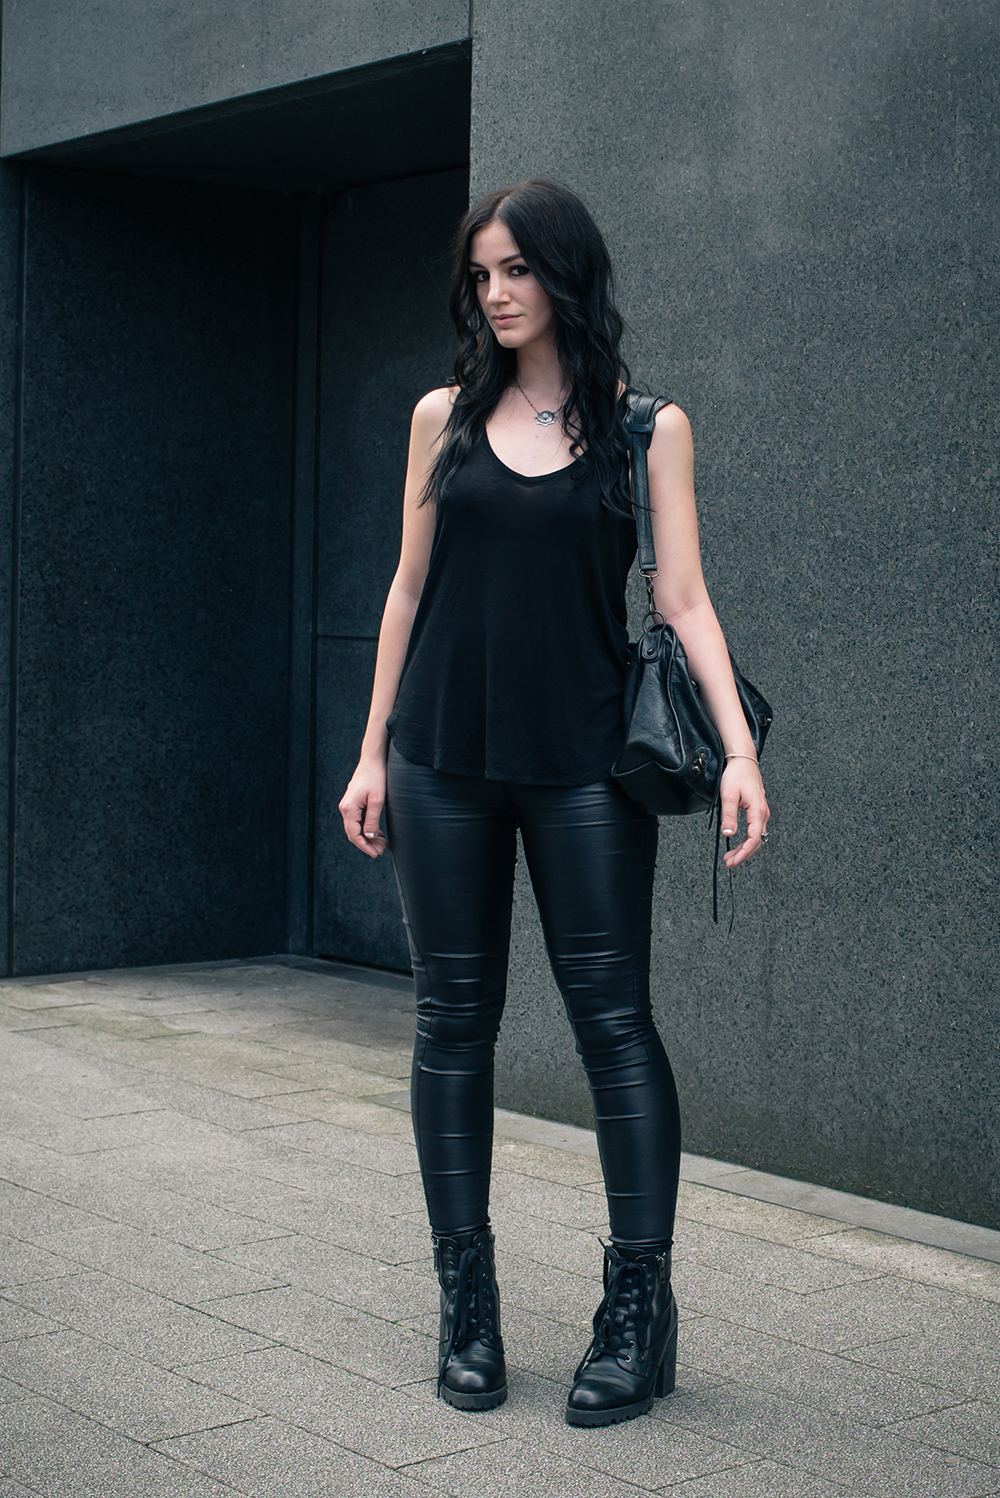 Fashion blogger Stephanie of FAIIINT wearing H&M black coated skinny jeans and tank top, ASH poker lace up ankle boots, Balenciaga city bag. All black simple dark street style outfit.